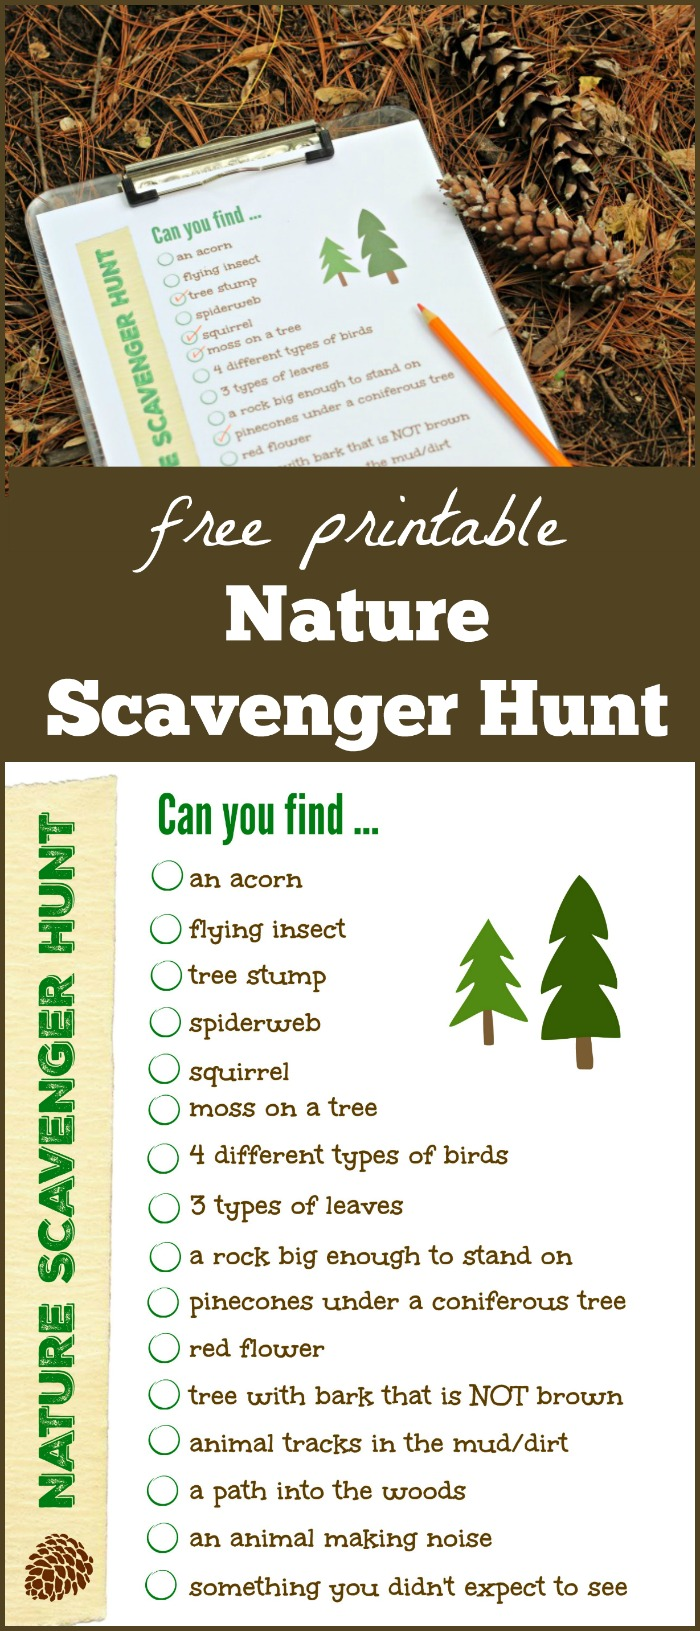 Nature Scavenger Hunt printable checklist for outdoor hunt!